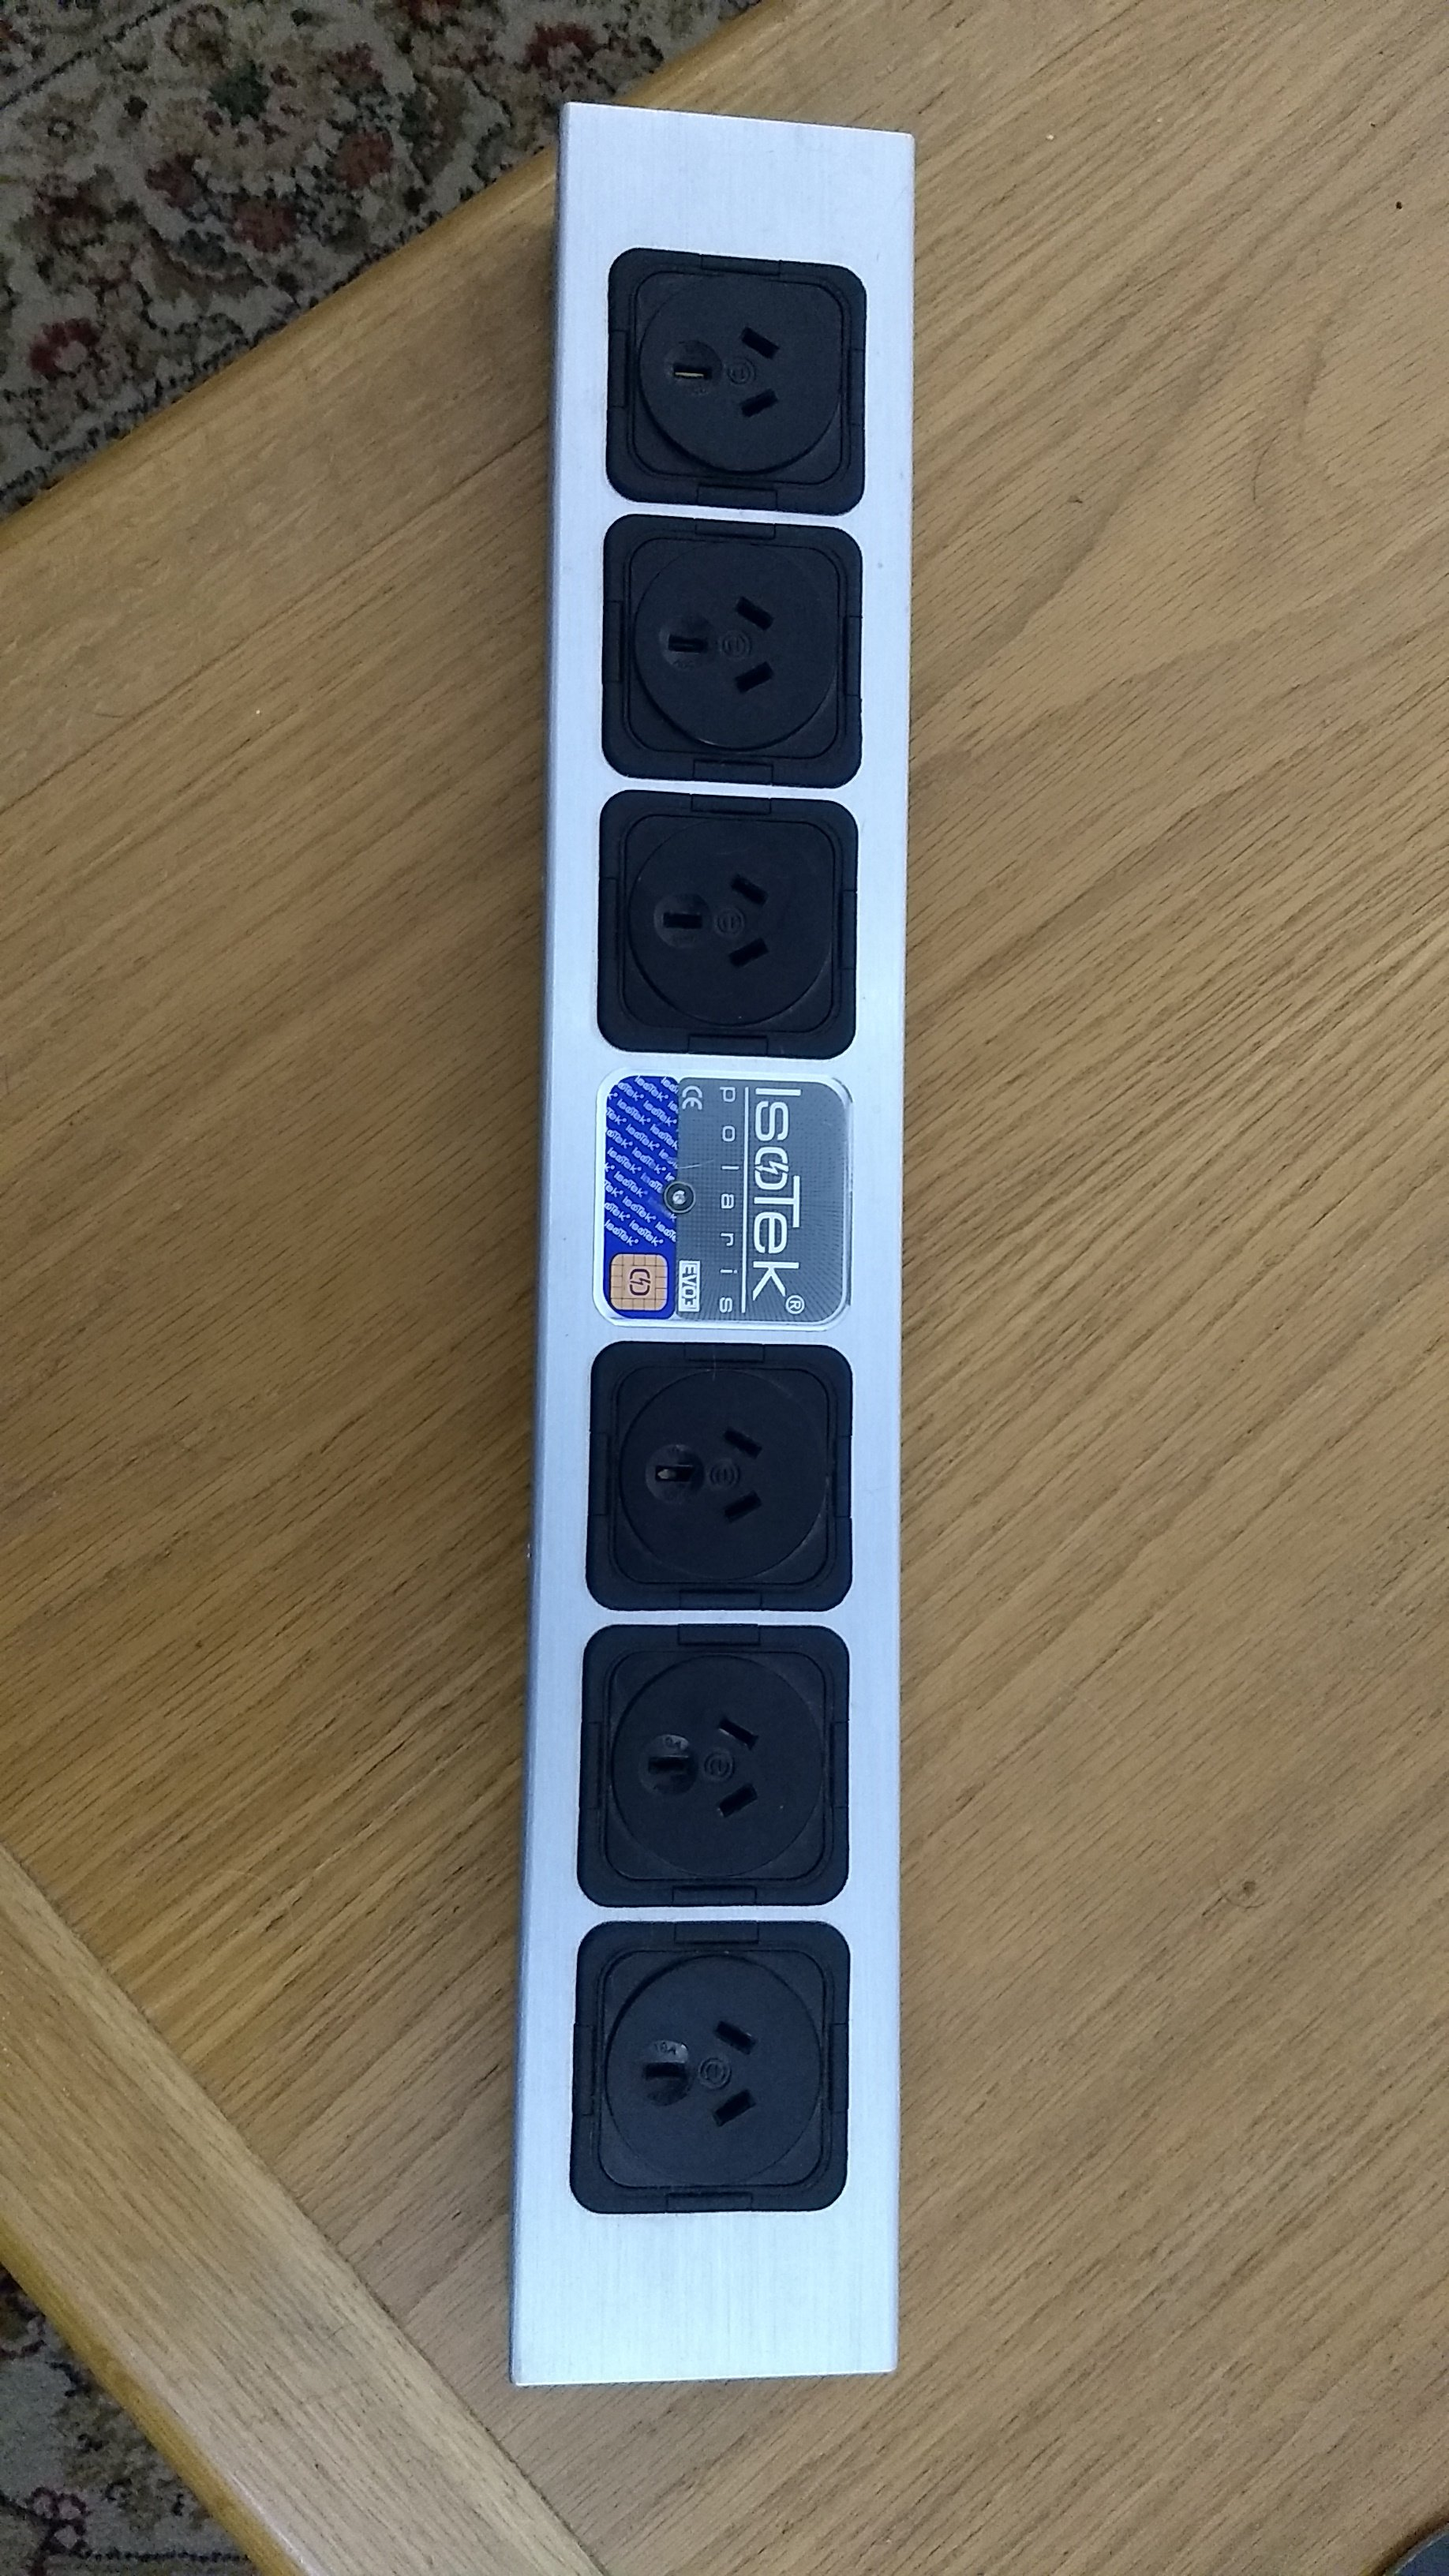 Sold Fs Isotek Polaris Power Board Plus Cables Classifieds Cable Au Plugs Electronics Stereonet Img 20181009 125542736